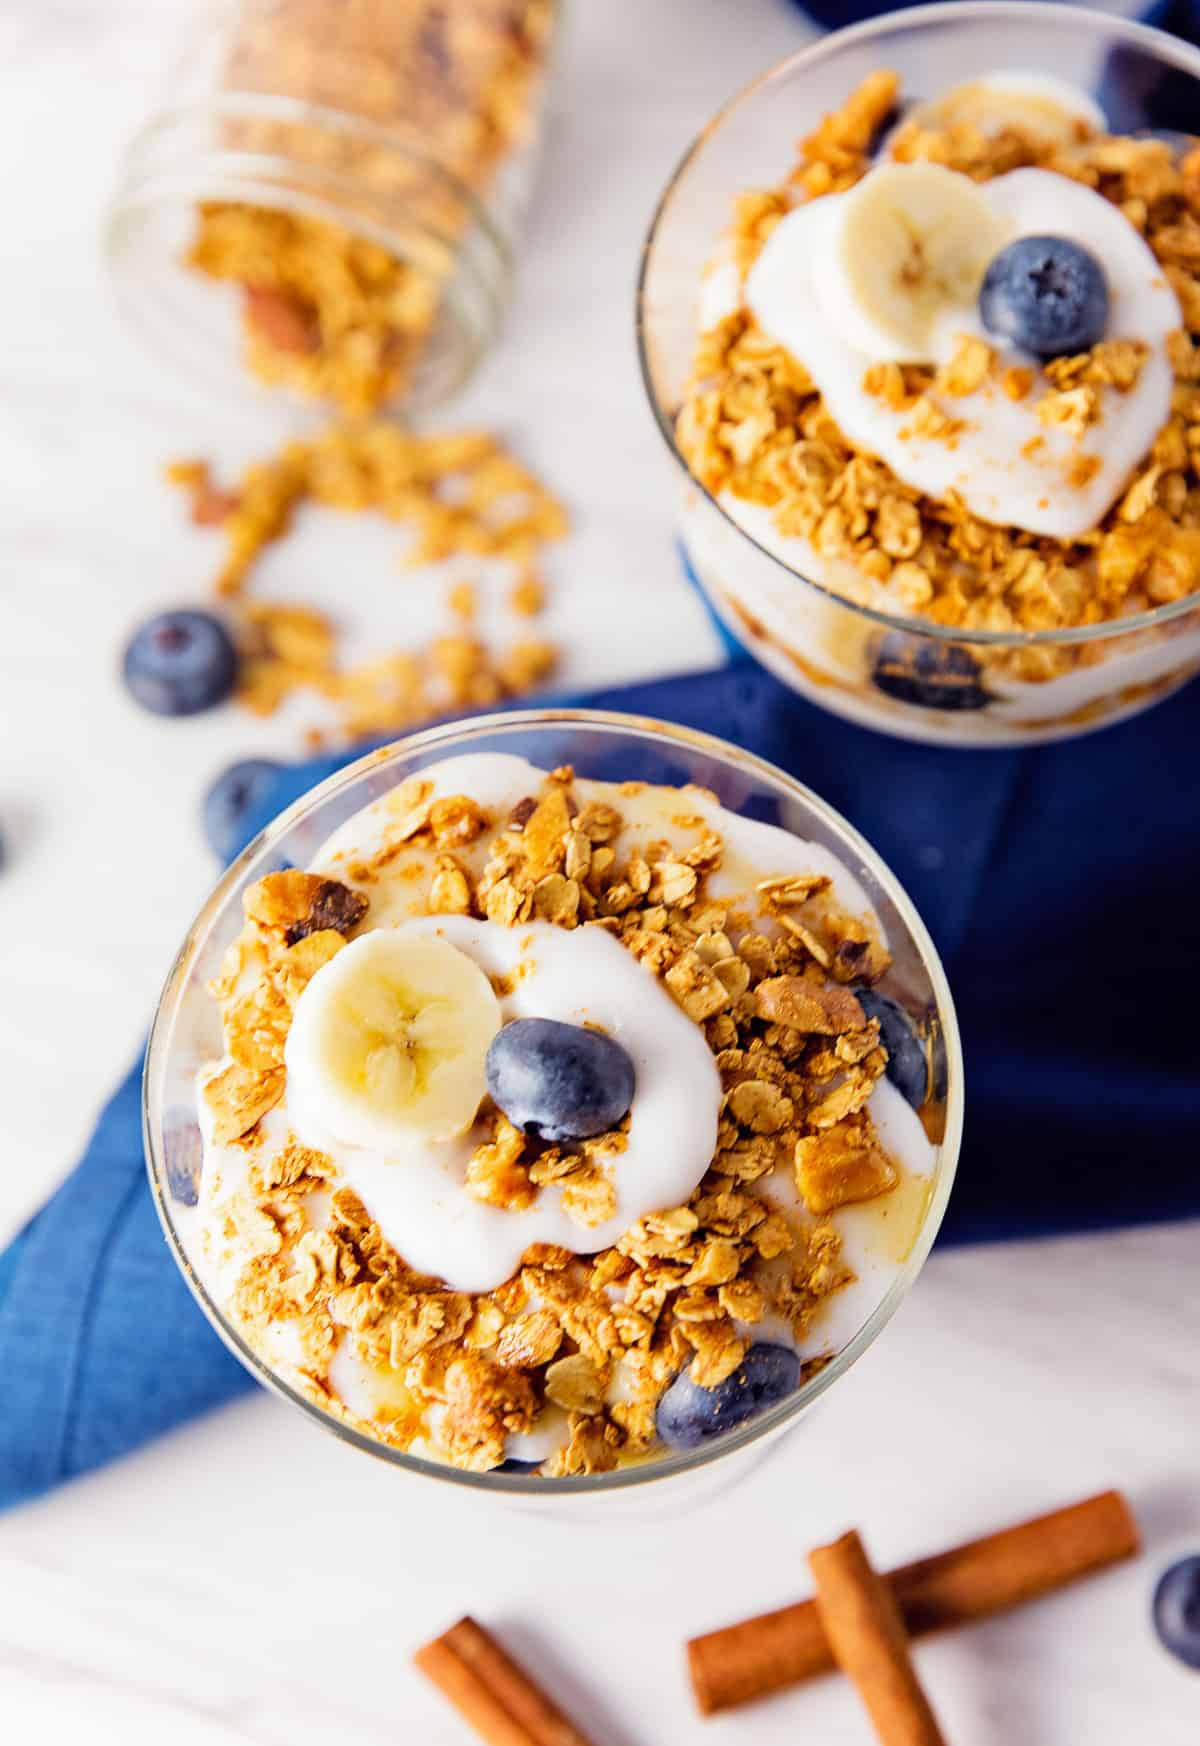 banana cinnamon parfait, banana parfait, cinnamon parfait, fruit parfait, blueberry parfait, blueberries, banana, parfait, recipe, vegan, vegetarian, whole food plant based, oil free, no oil, refined sugar free, no refined sugar, breakfast, dessert, simple, east, fast, 30 minutes, healthy, vegan parfait, whole food plant based parfait, whole food plant based recipe, whole food plant based breakfast, gluten free, gluten free recipe, gluten free breakfast, granola, berries, maple syrup, cinnamon, oats, minimally processed, meals, unprocessed